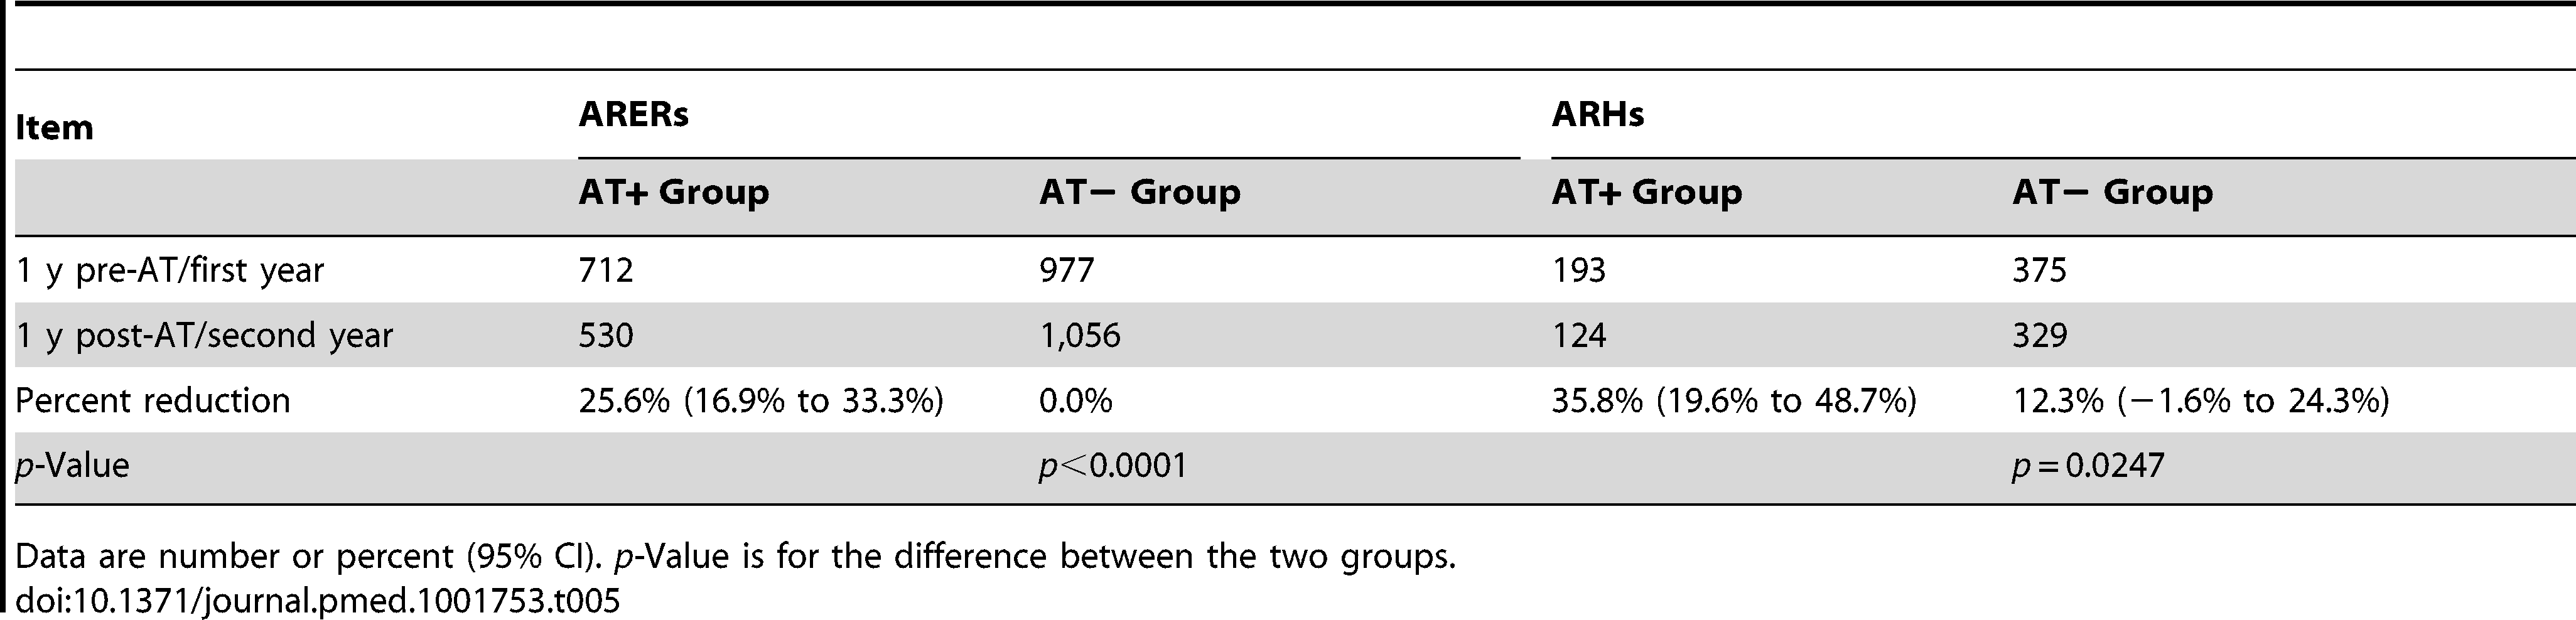 Annual frequency of asthma-related emergency room visits and asthma-related hospitalizations: comparing adenotonsillectomy to no adenotonsillectomy.